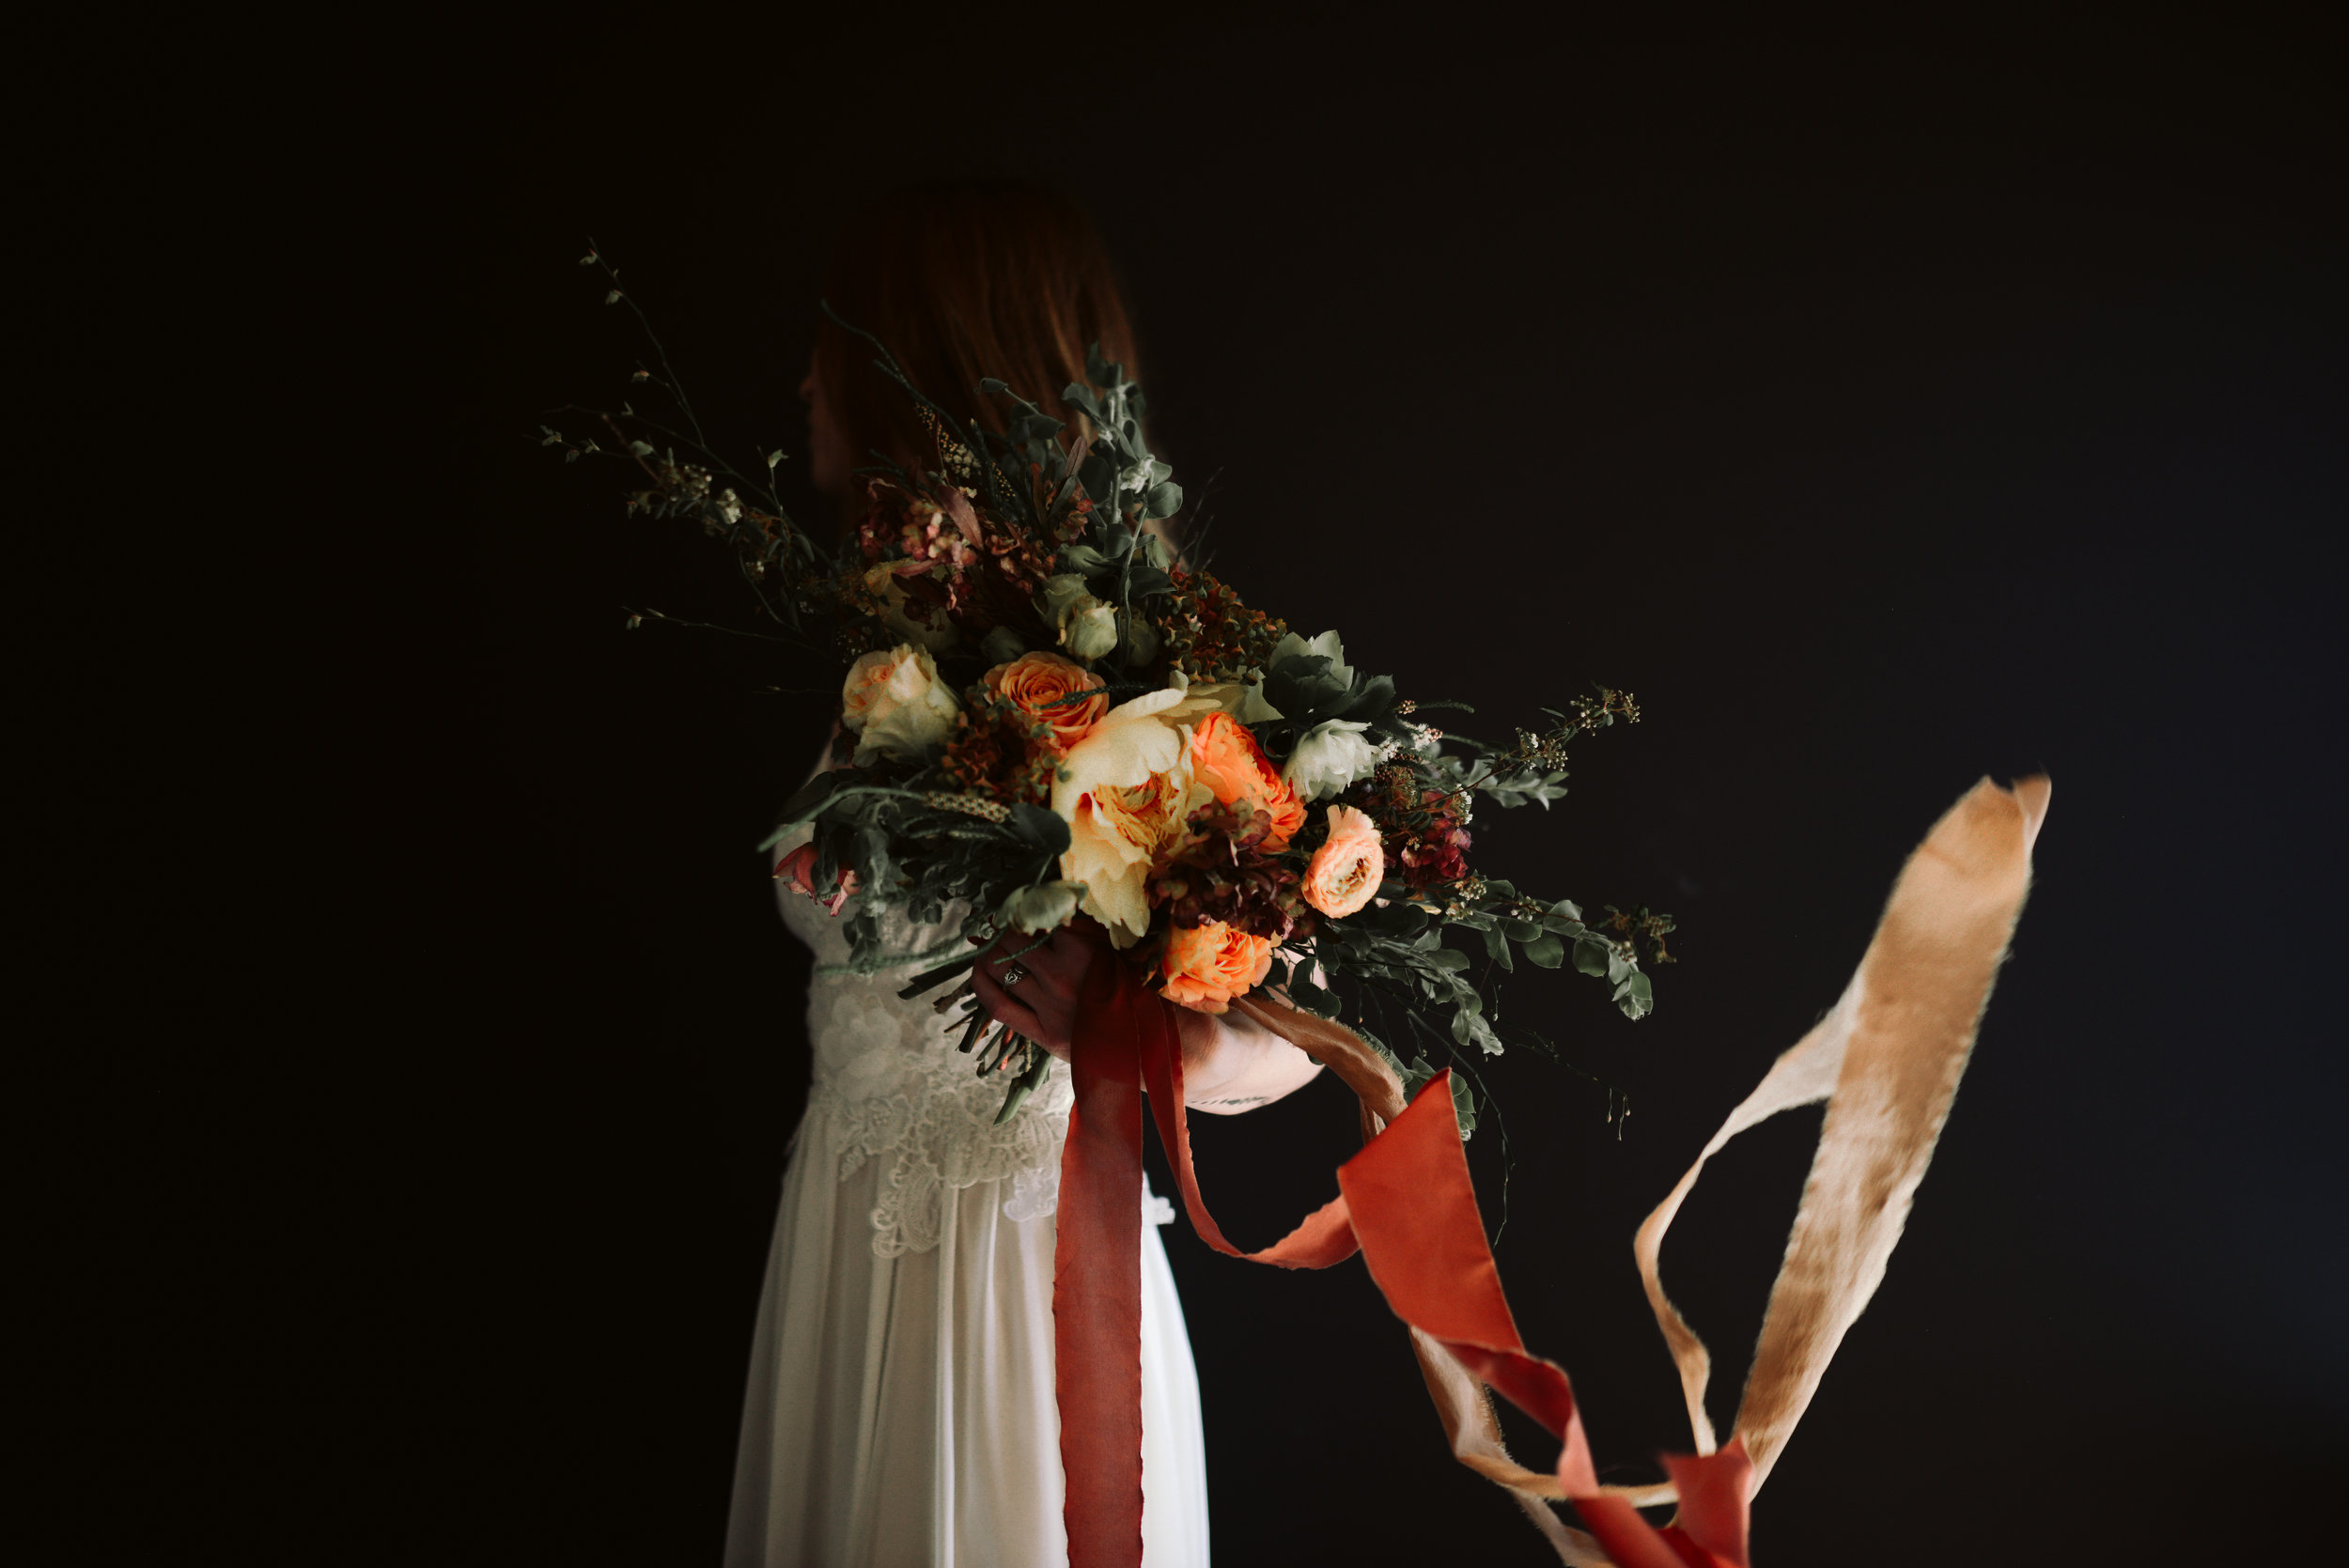 What To Do with Flowers After the Wedding